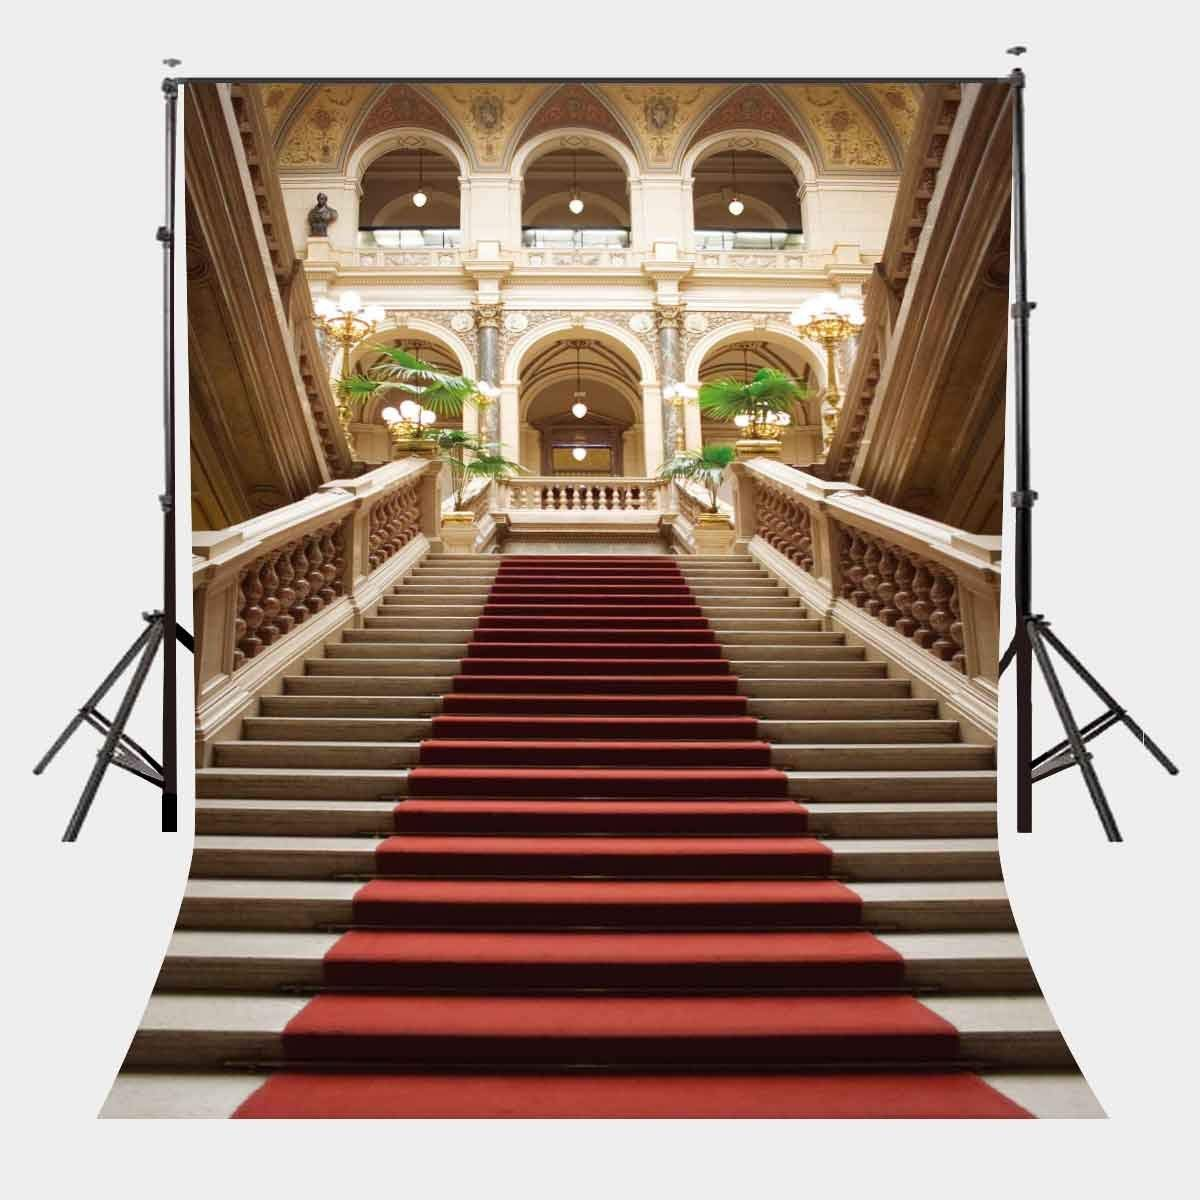 150x220cm Red Carpet Stairs Photography Backdrop Retro Elegant Wedding Photography Studio Props